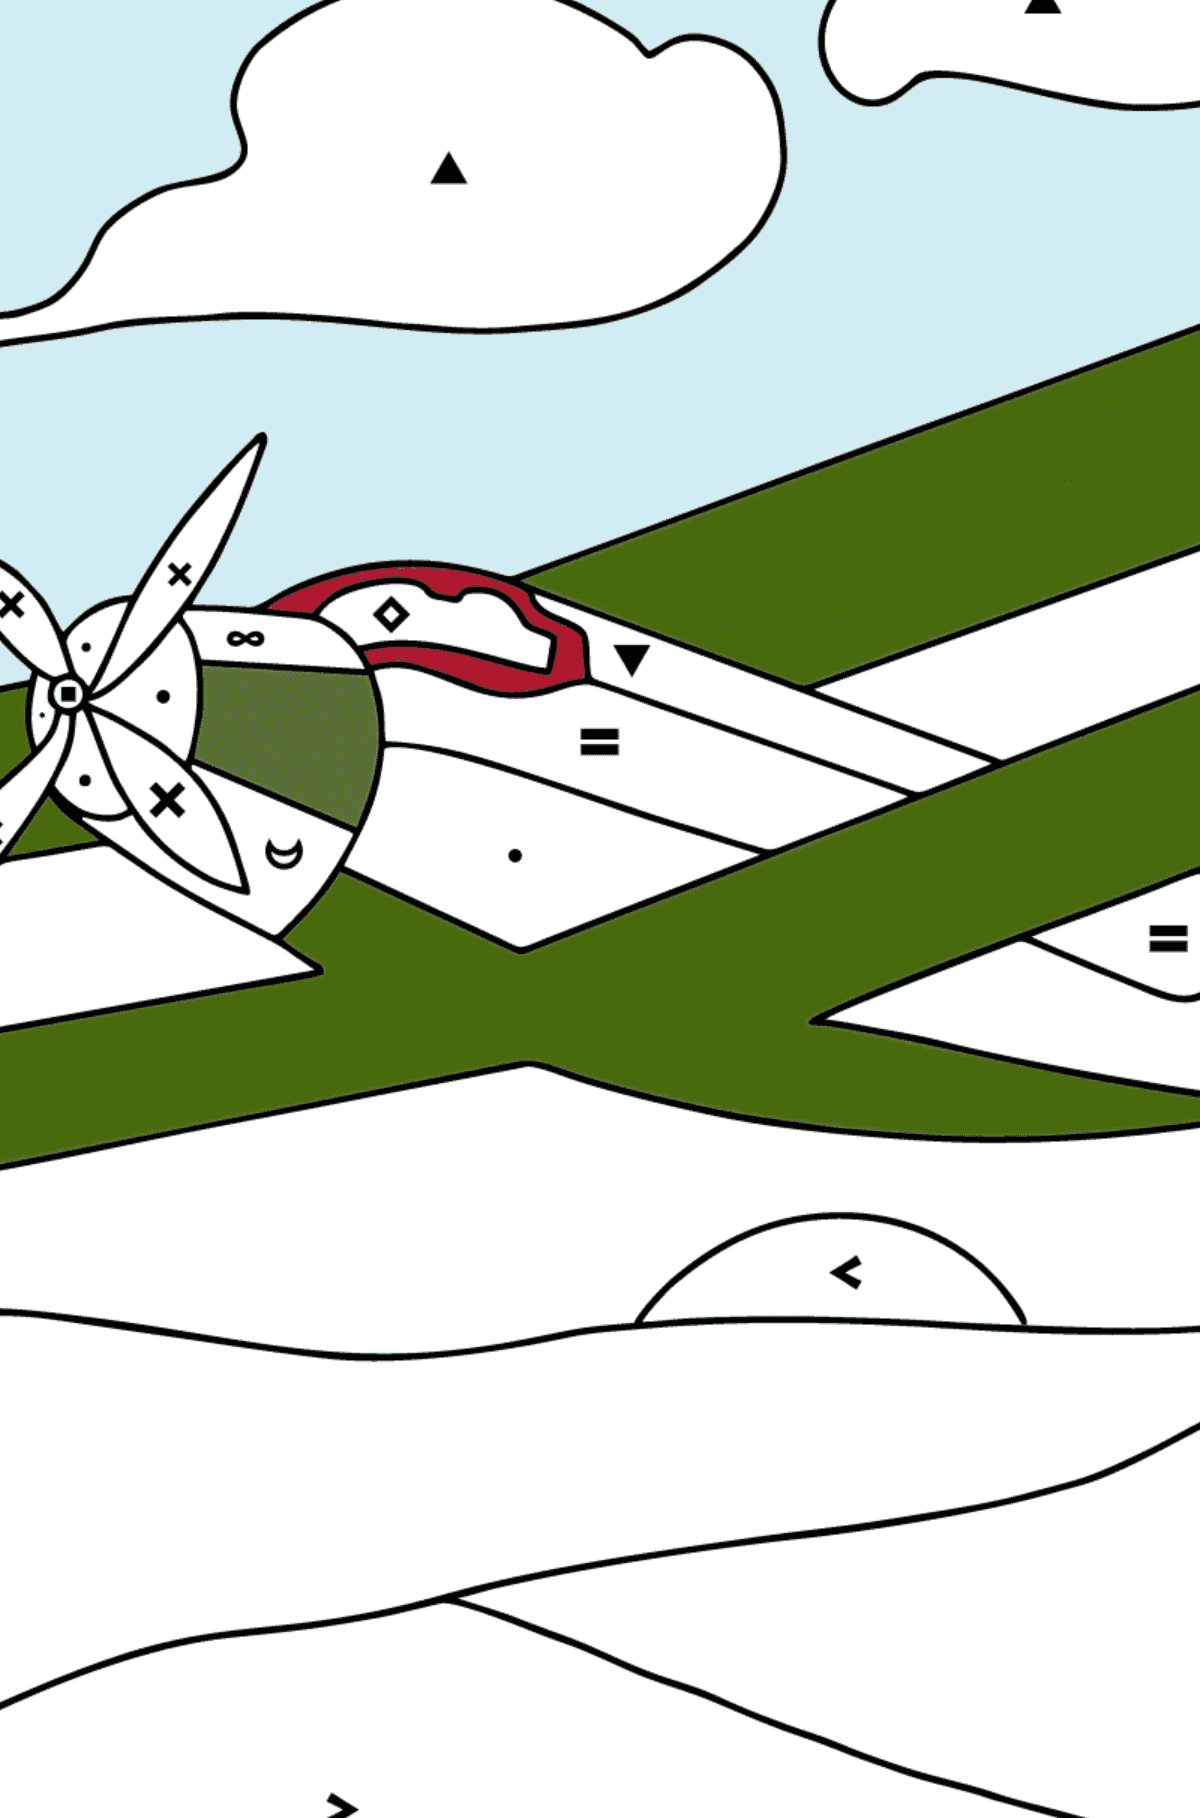 Coloring Page - A Biplane - Coloring by Symbols for Children